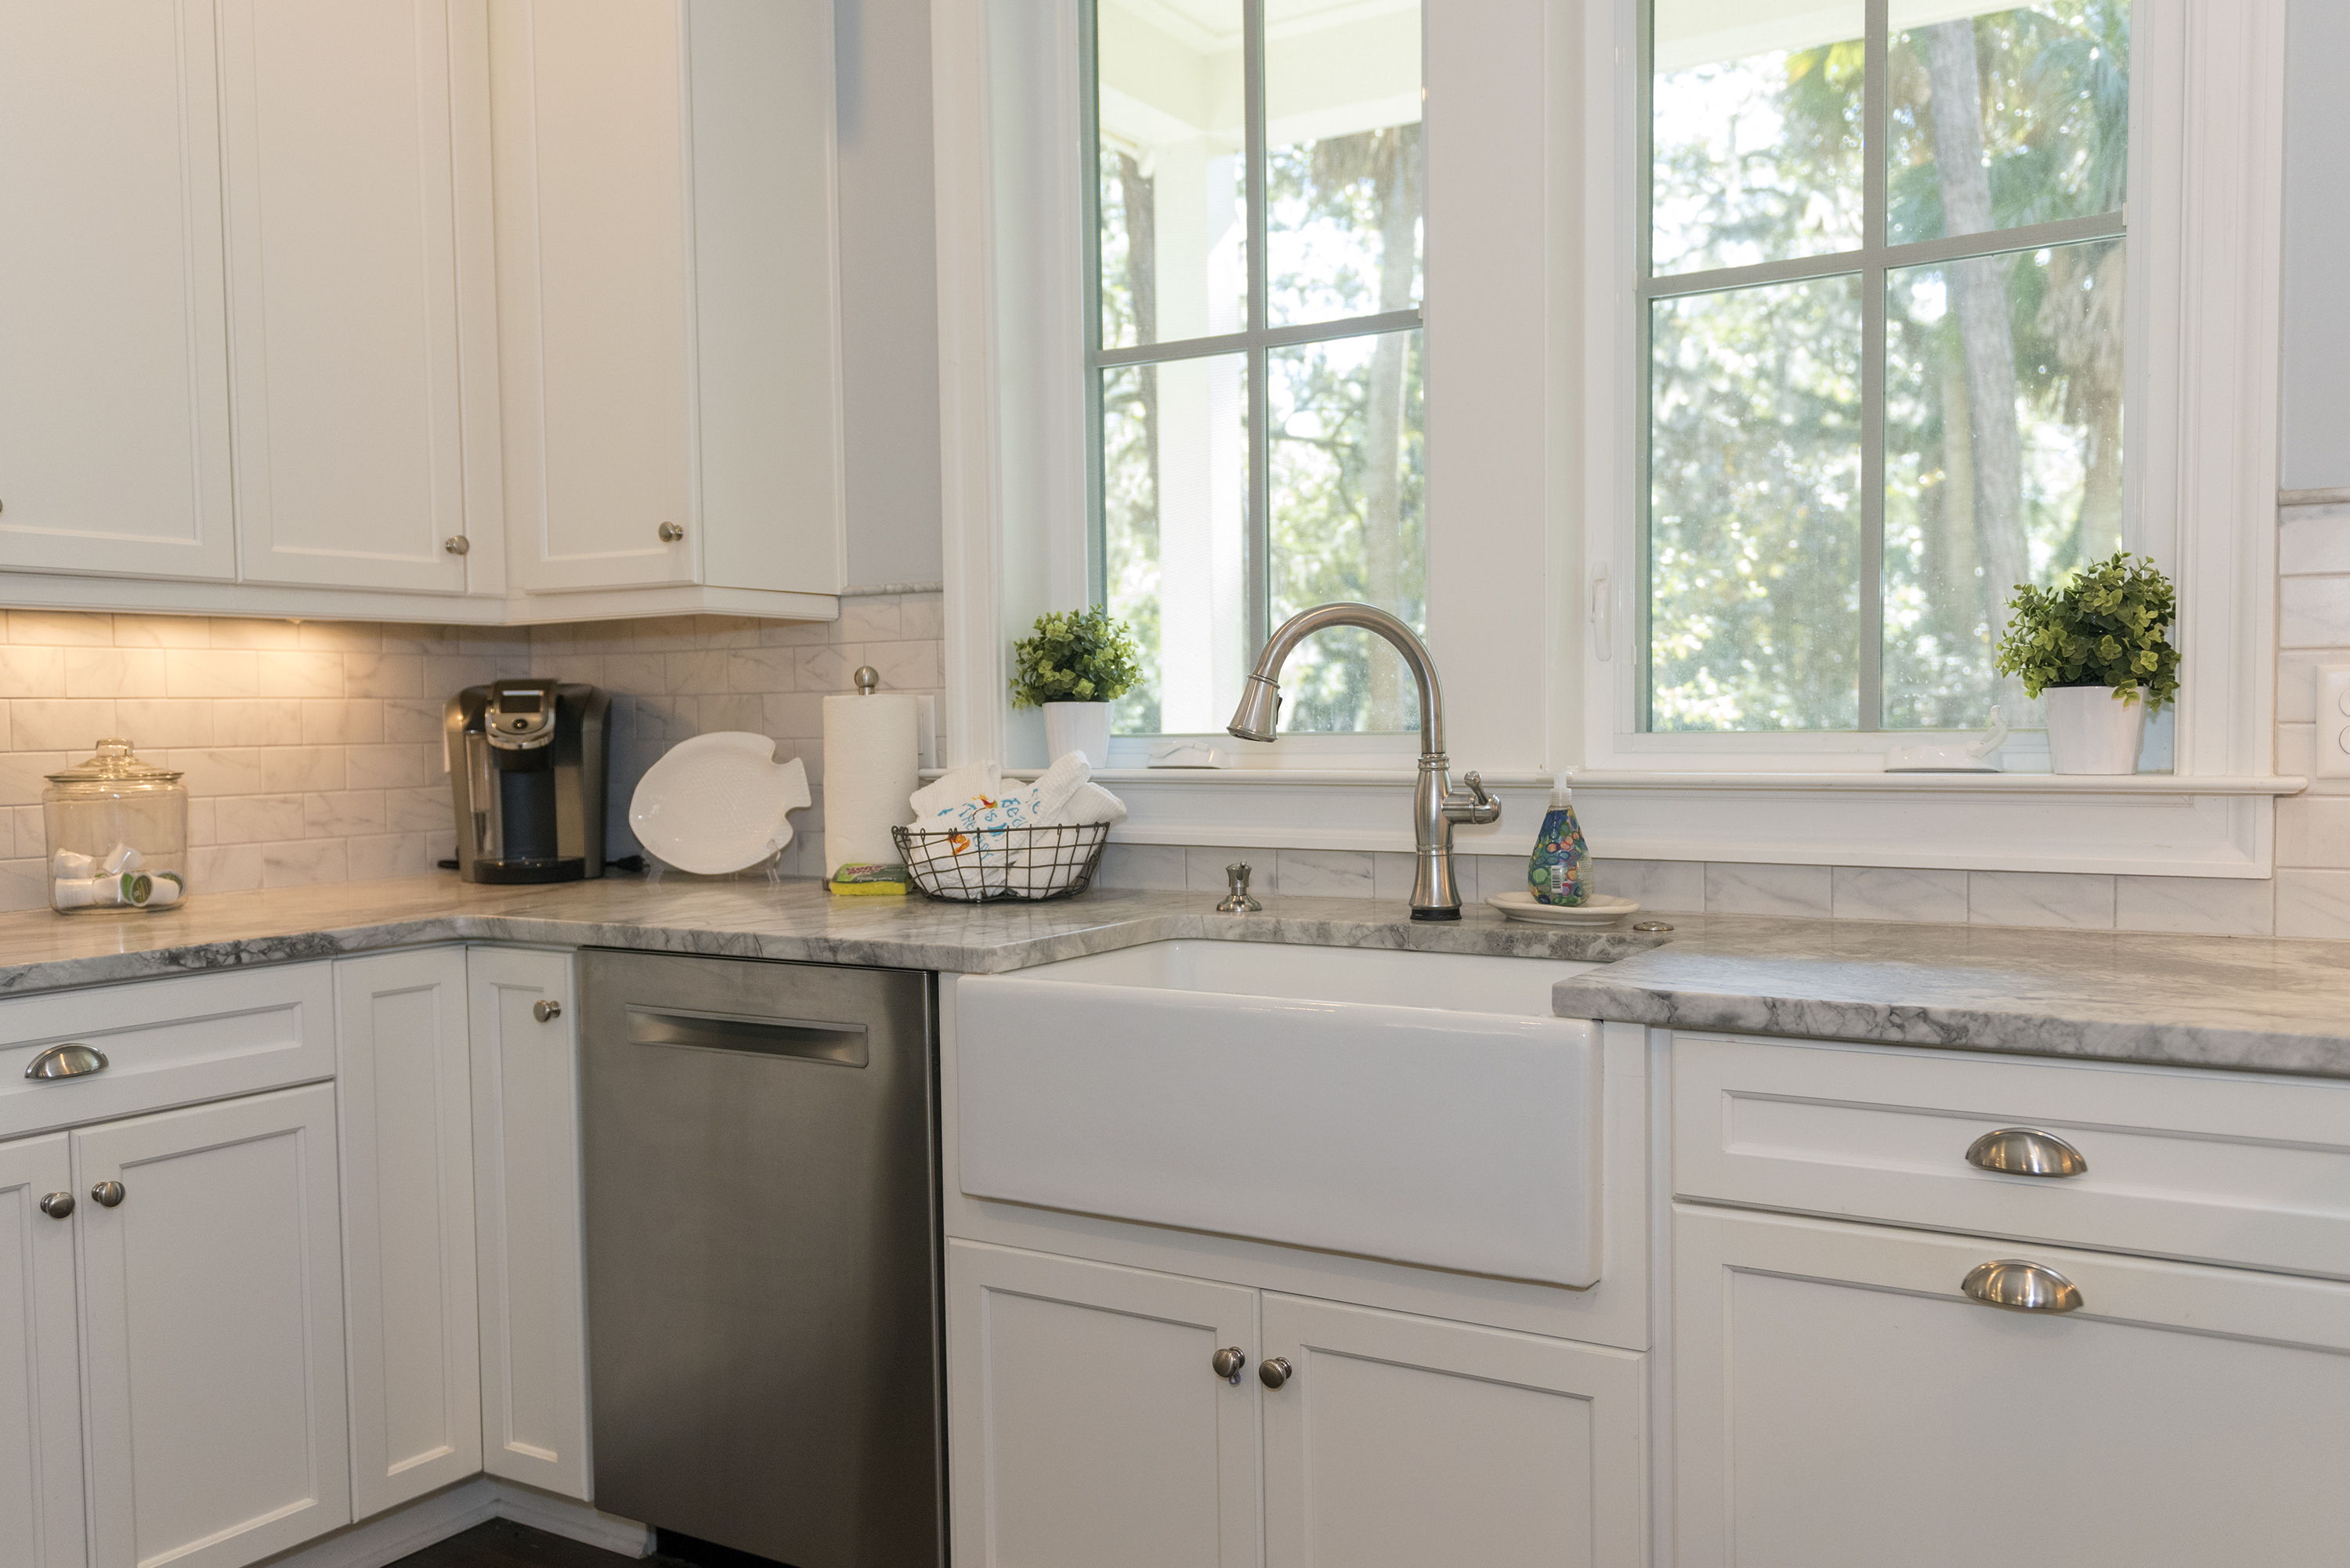 The well stocked cabinets hold all the dish ware you will need for dining.